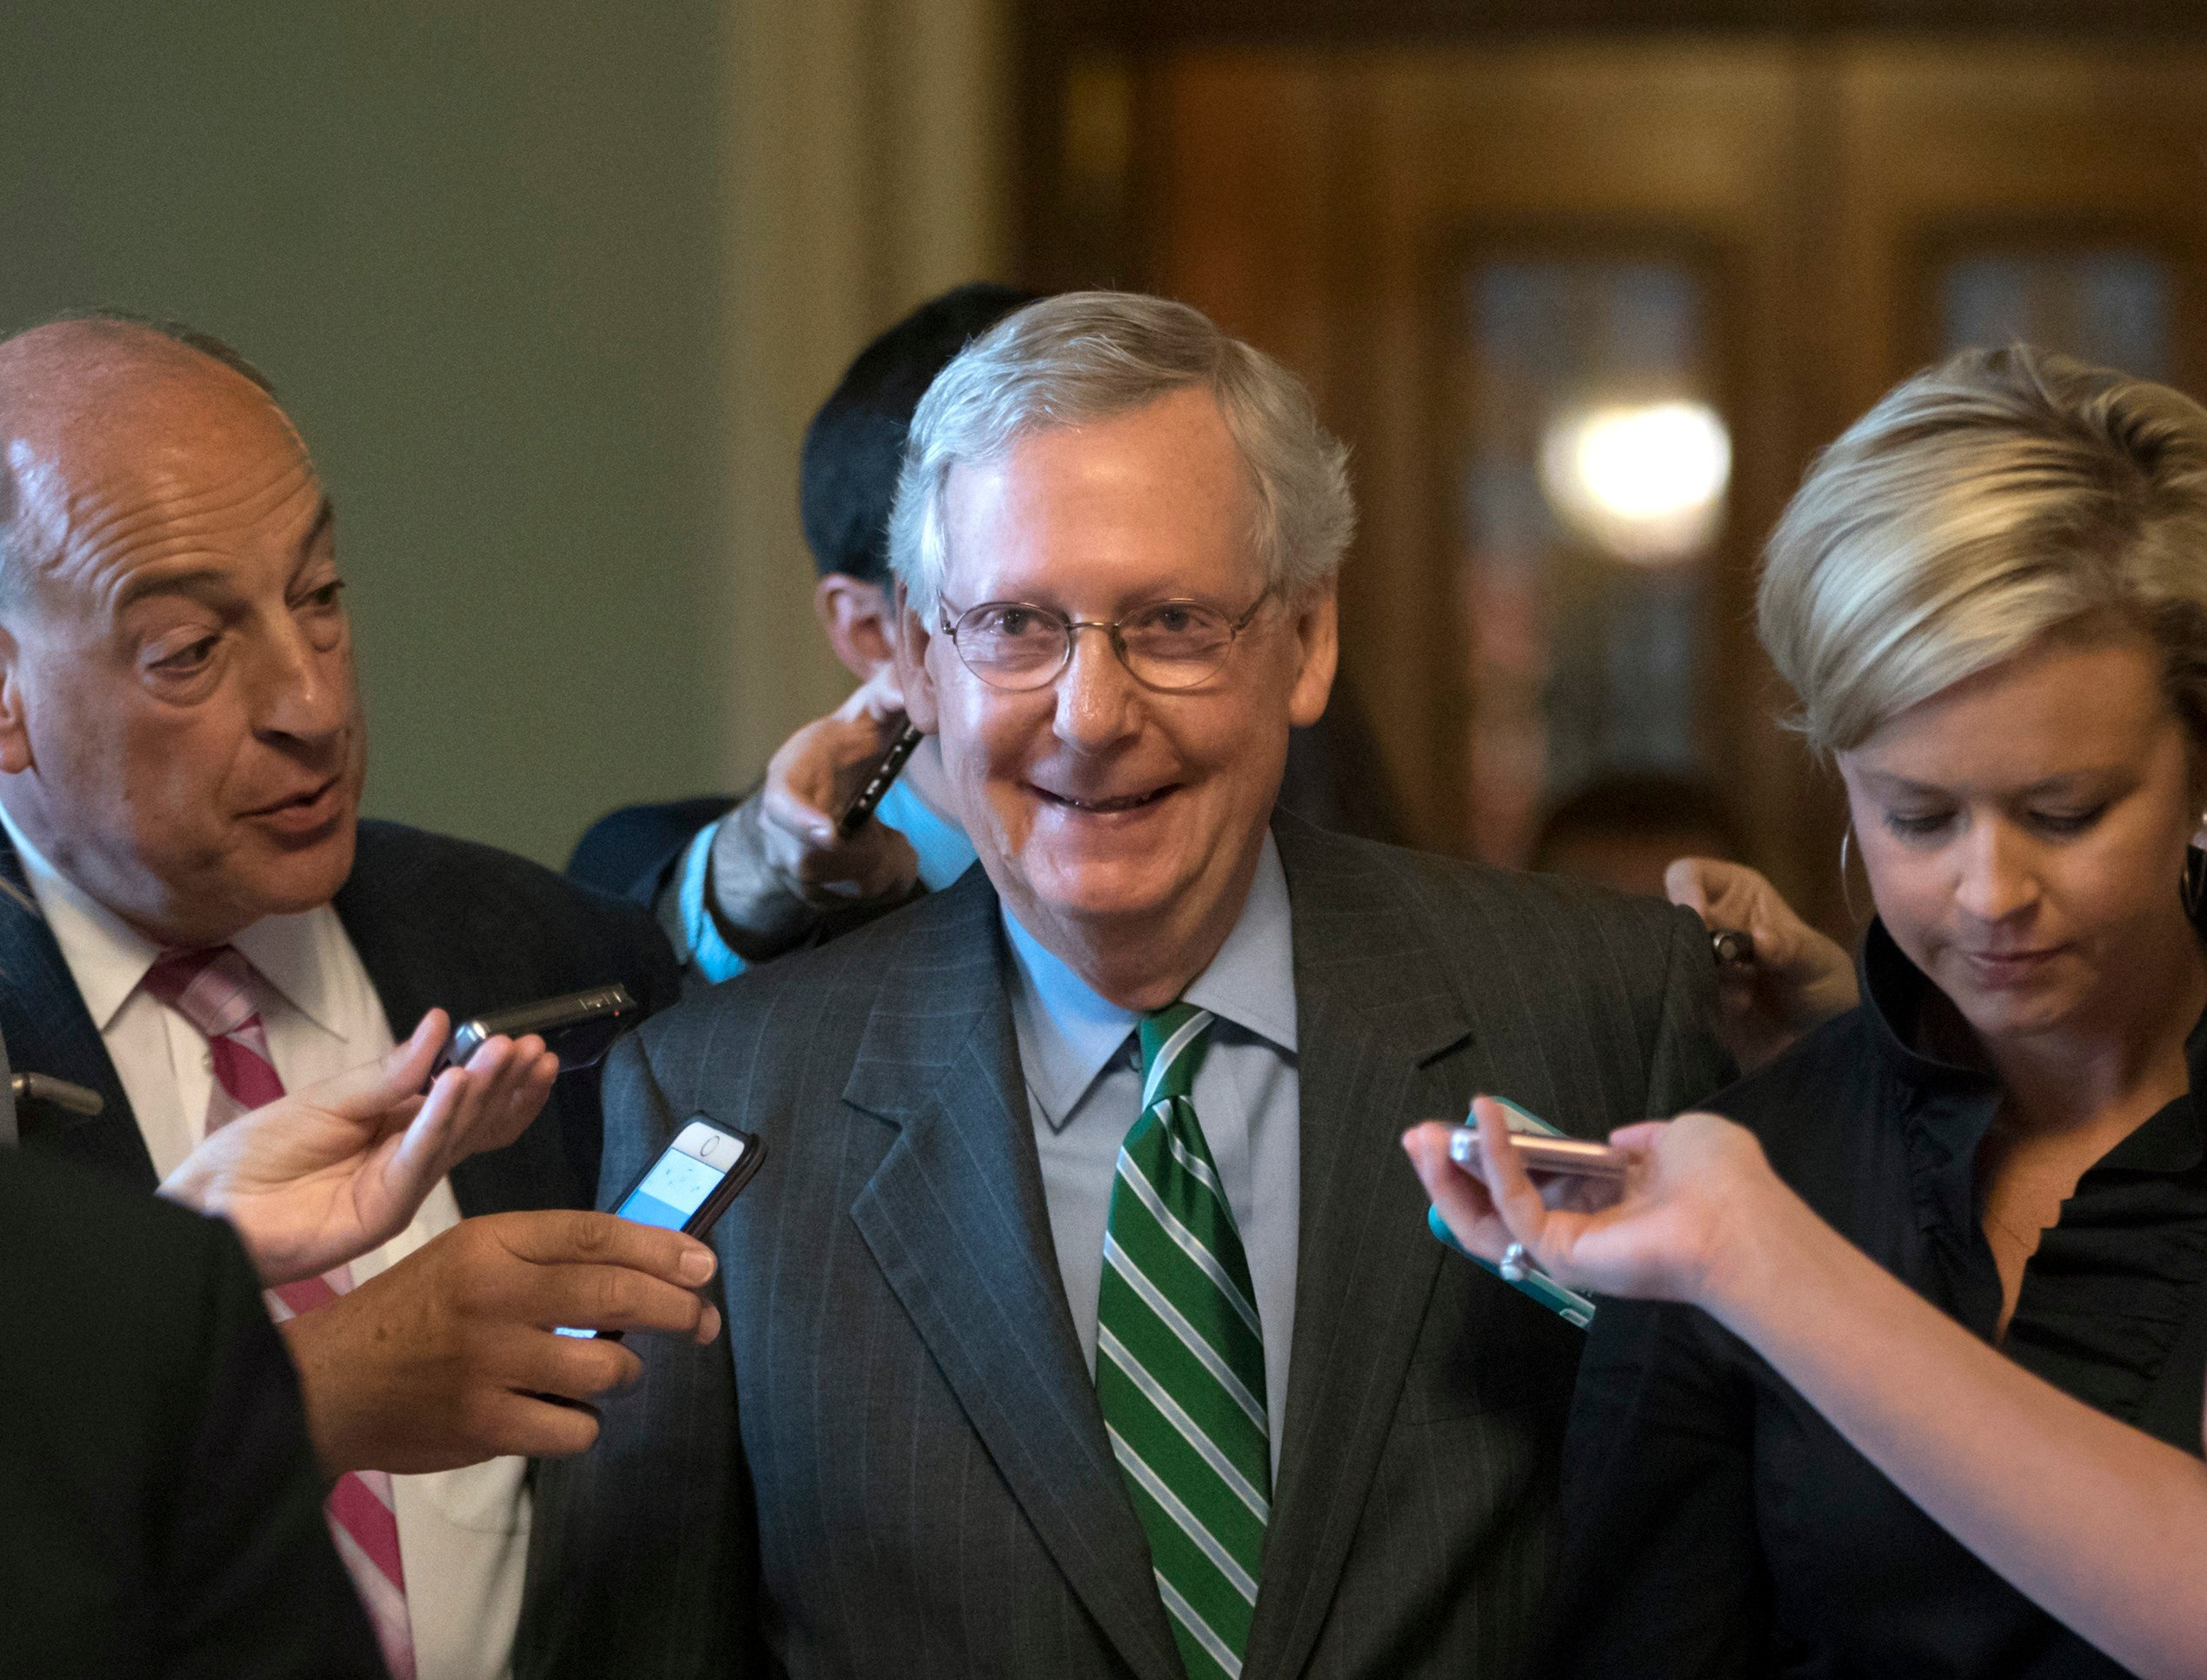 FILE: Sen. Mitch McConnell smiles as he leaves the chamber after announcing the release of the Republicans' healthcare bill on June 22, 2017.